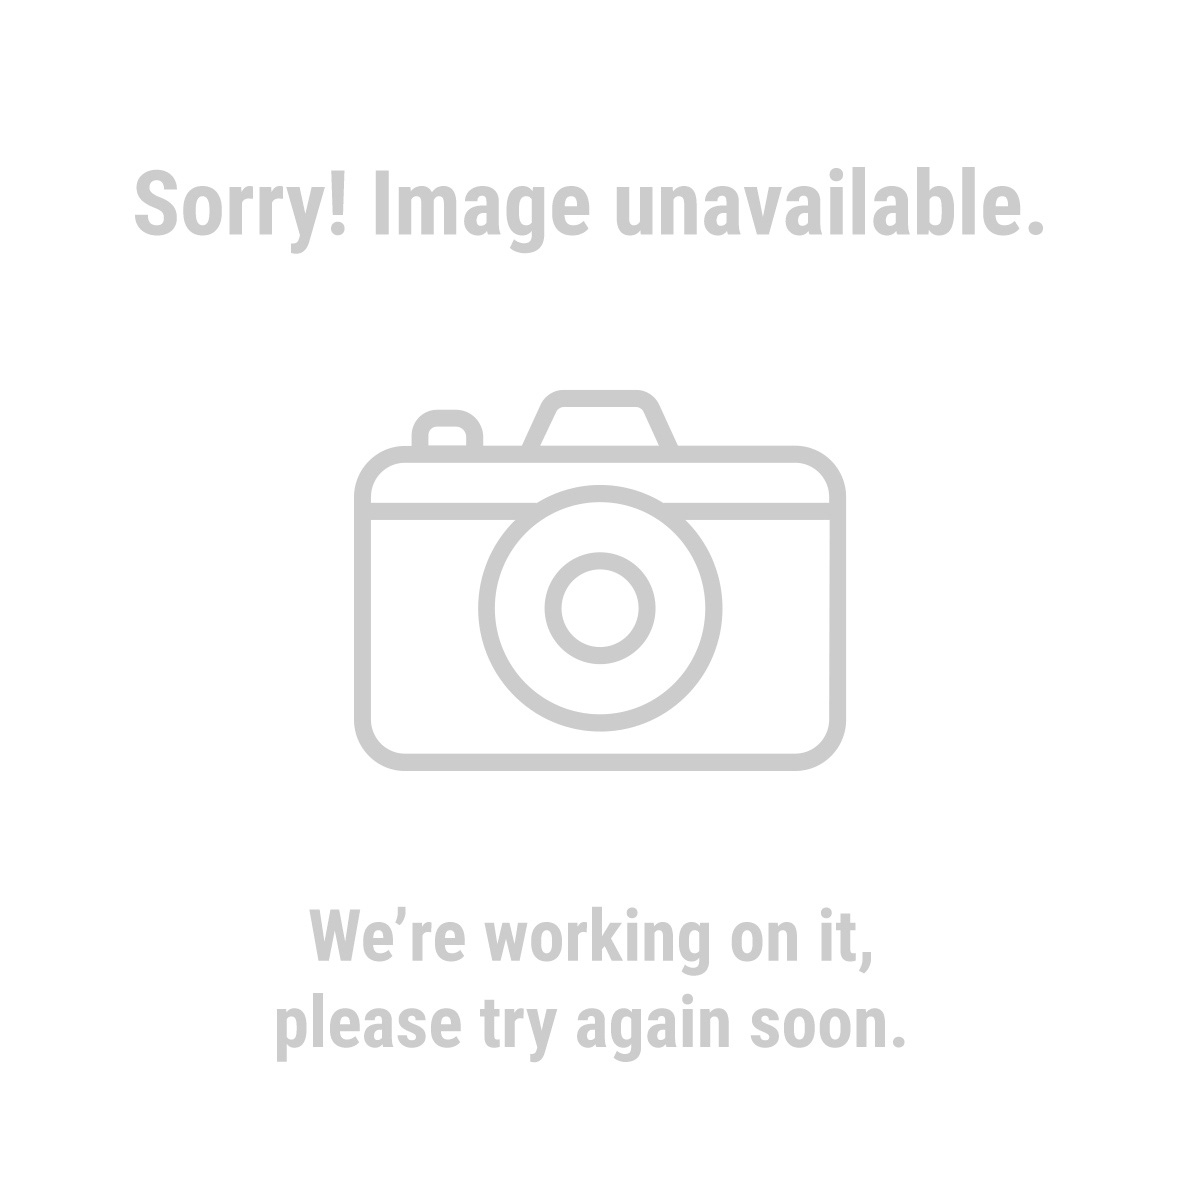 Bunker Hill Security 93575 0.37 Cubic Ft. Electronic Digital Safe